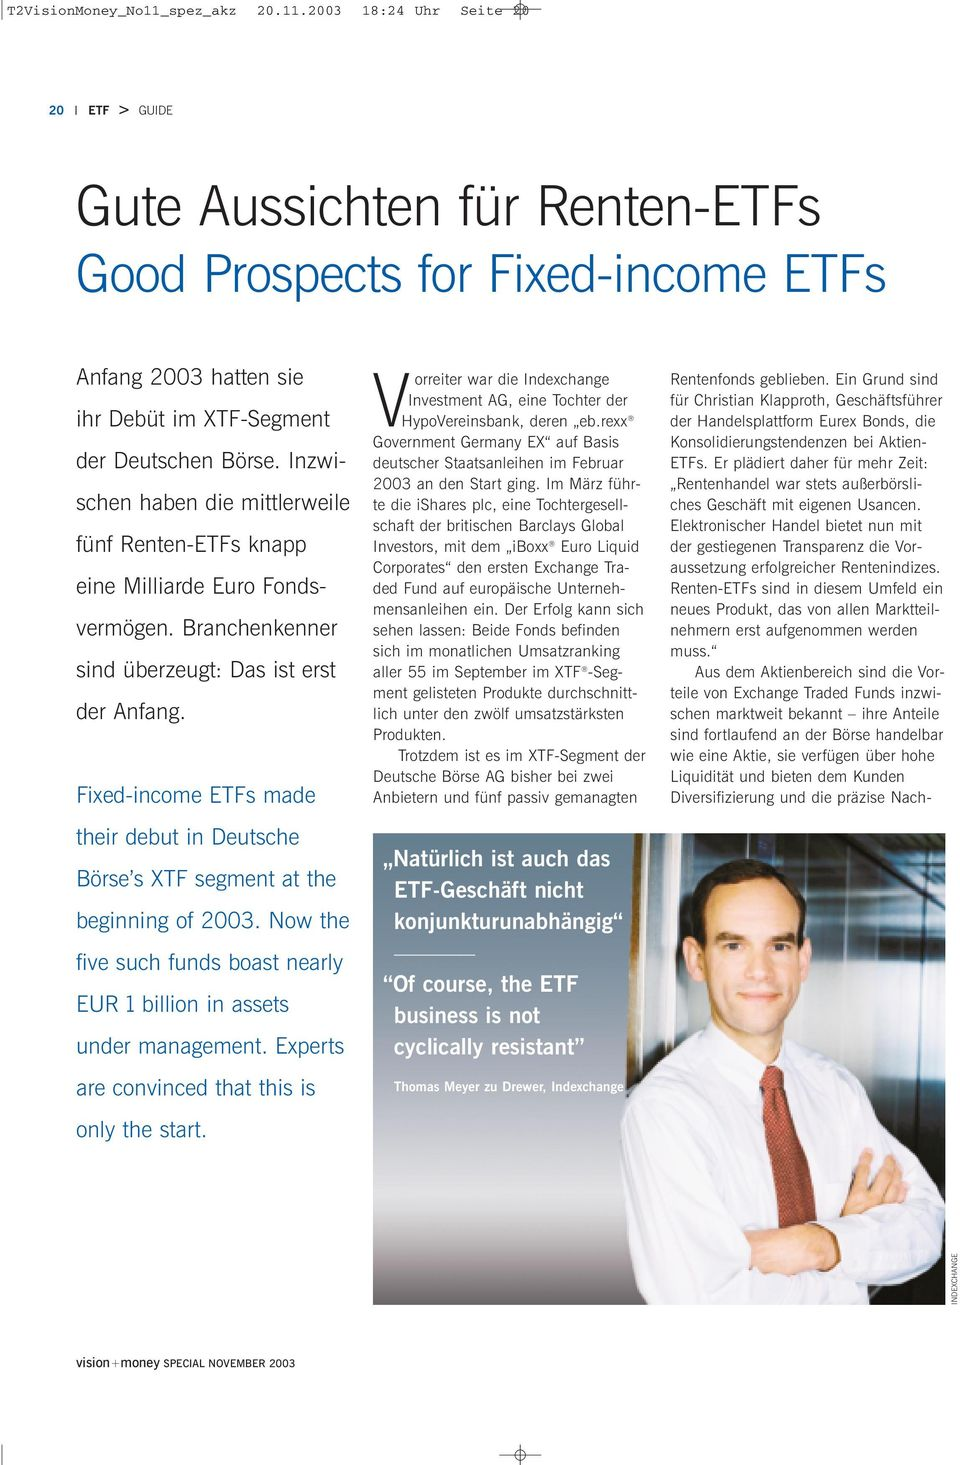 Fixed-income ETFs made ir debut in Deutsche Börse s XTF segment at beginning 2003. Now five such funds boast nearly EUR 1billion in assets under management.